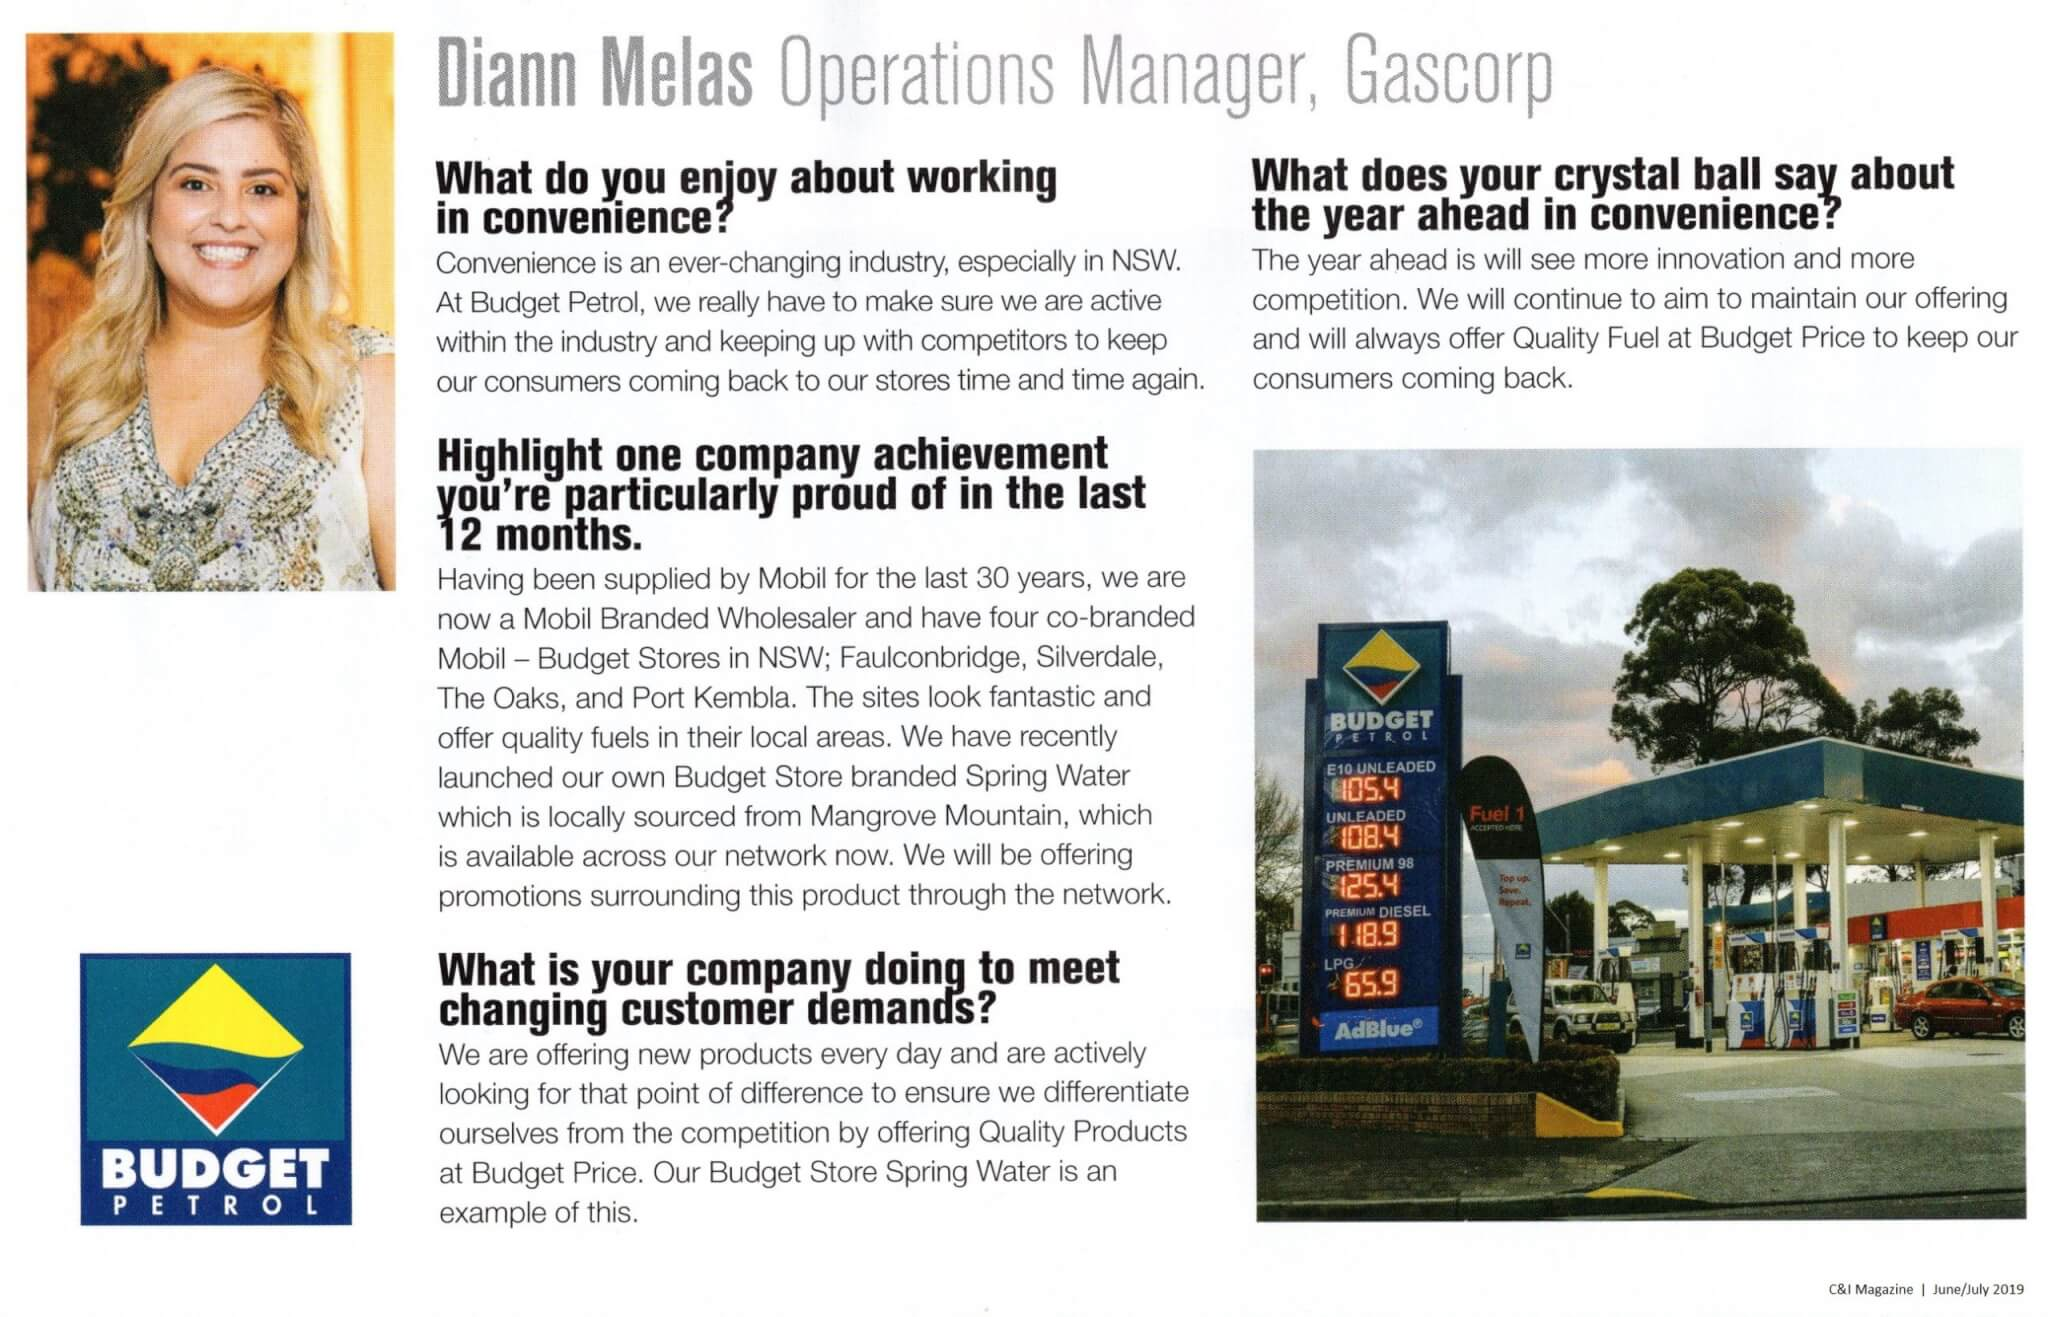 Diann Melas, Operations Manager features in C&I Magazine June/July 2019 issue